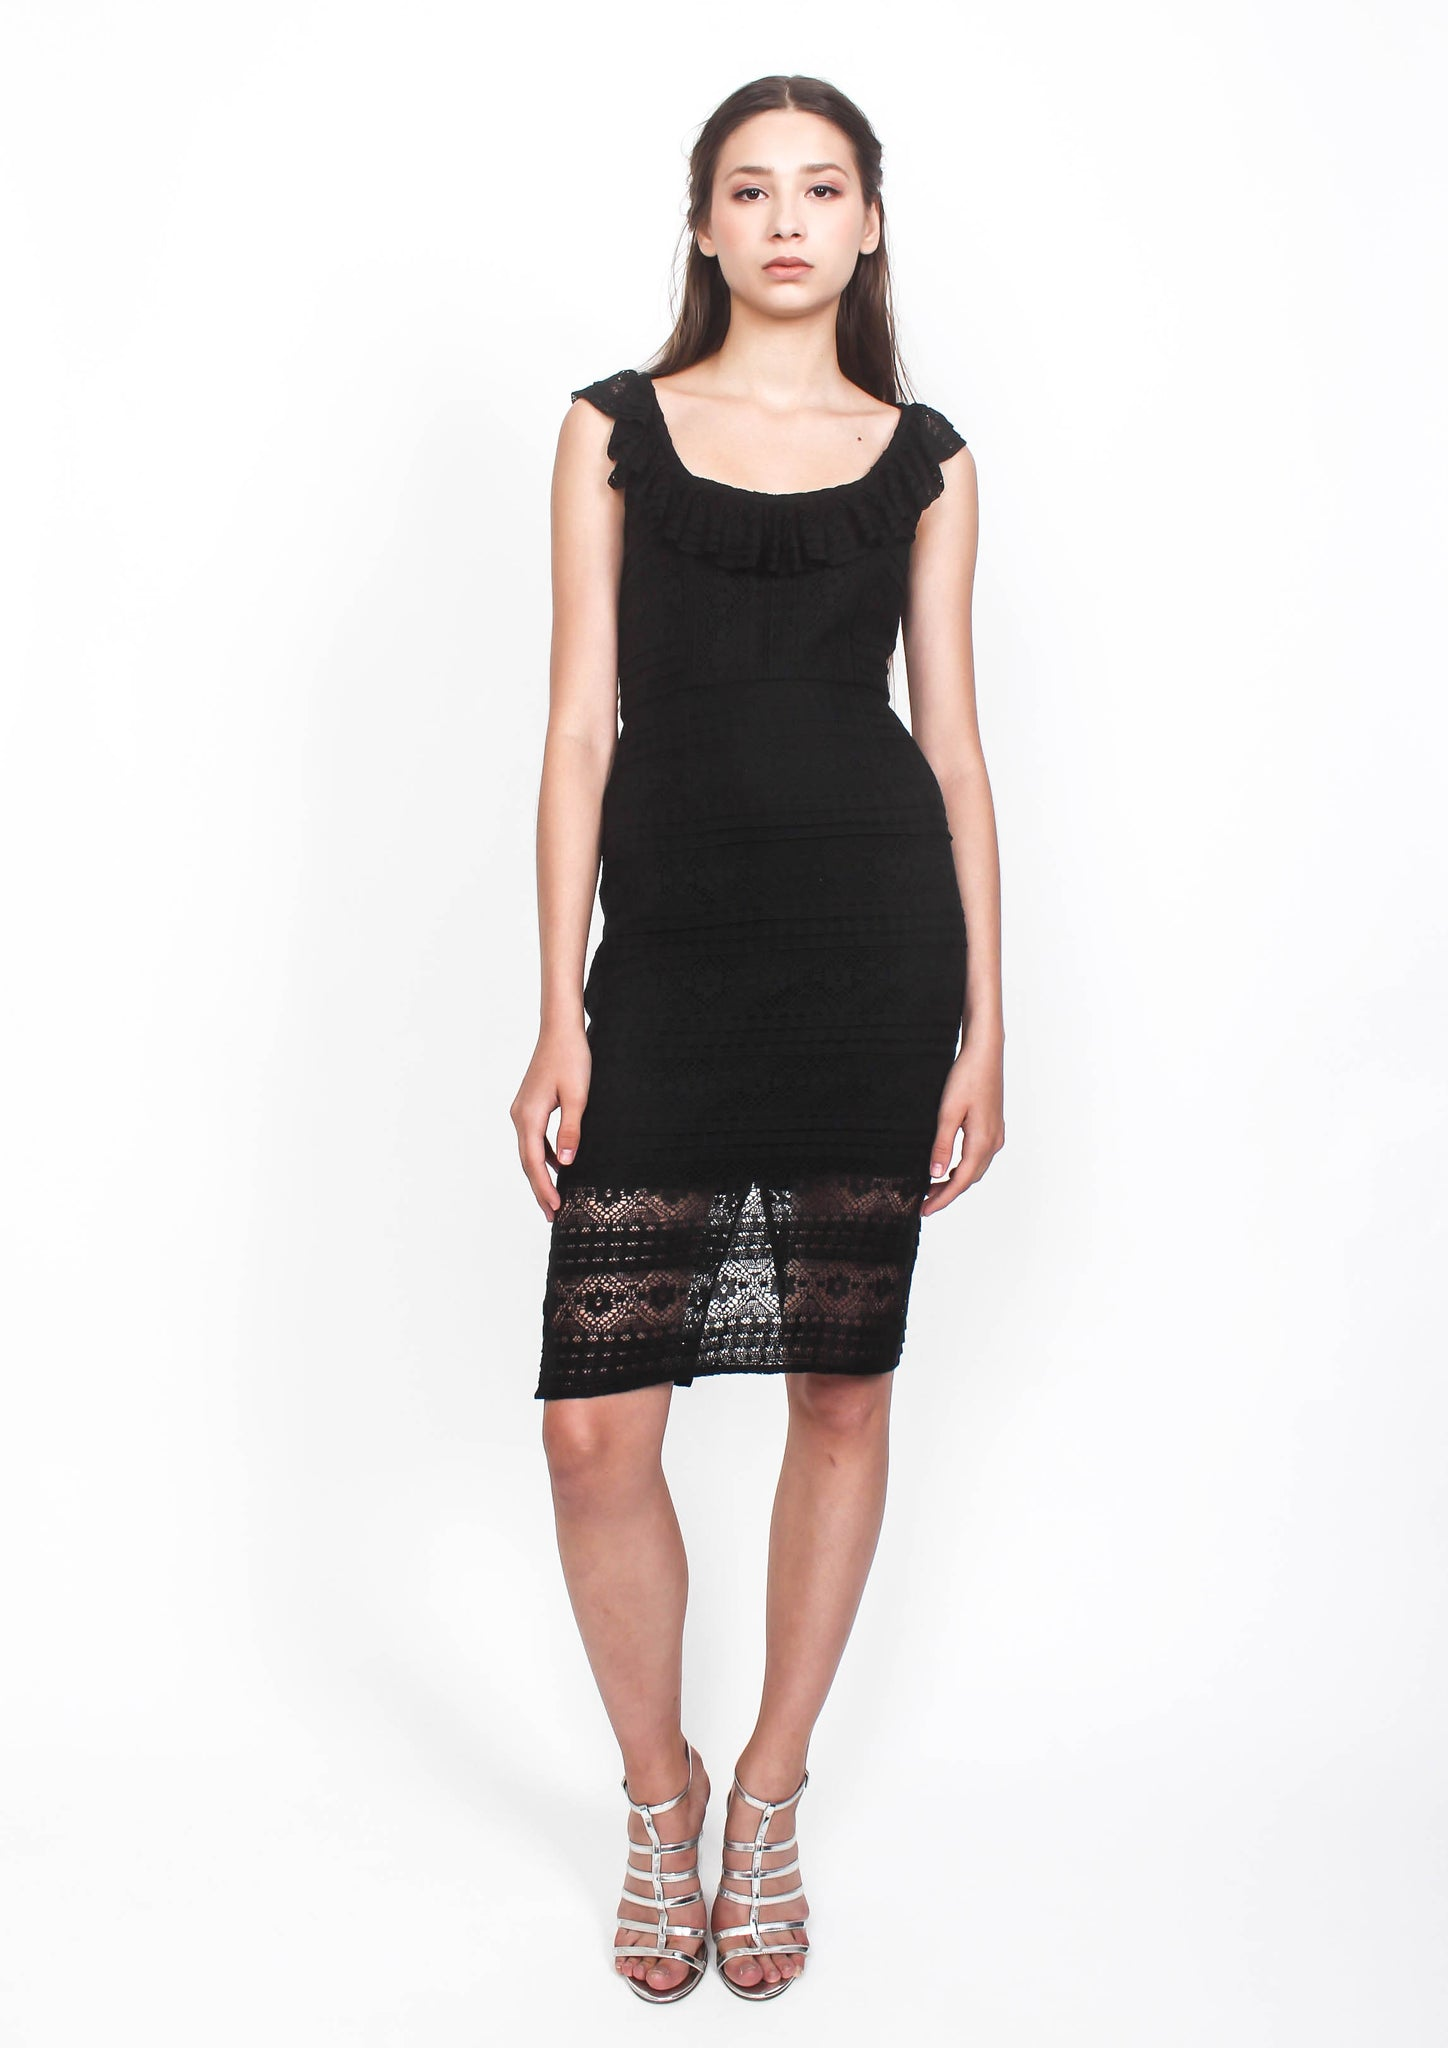 Alyssa Layered Lace Scoop Neck Dress (Black) - Moxie